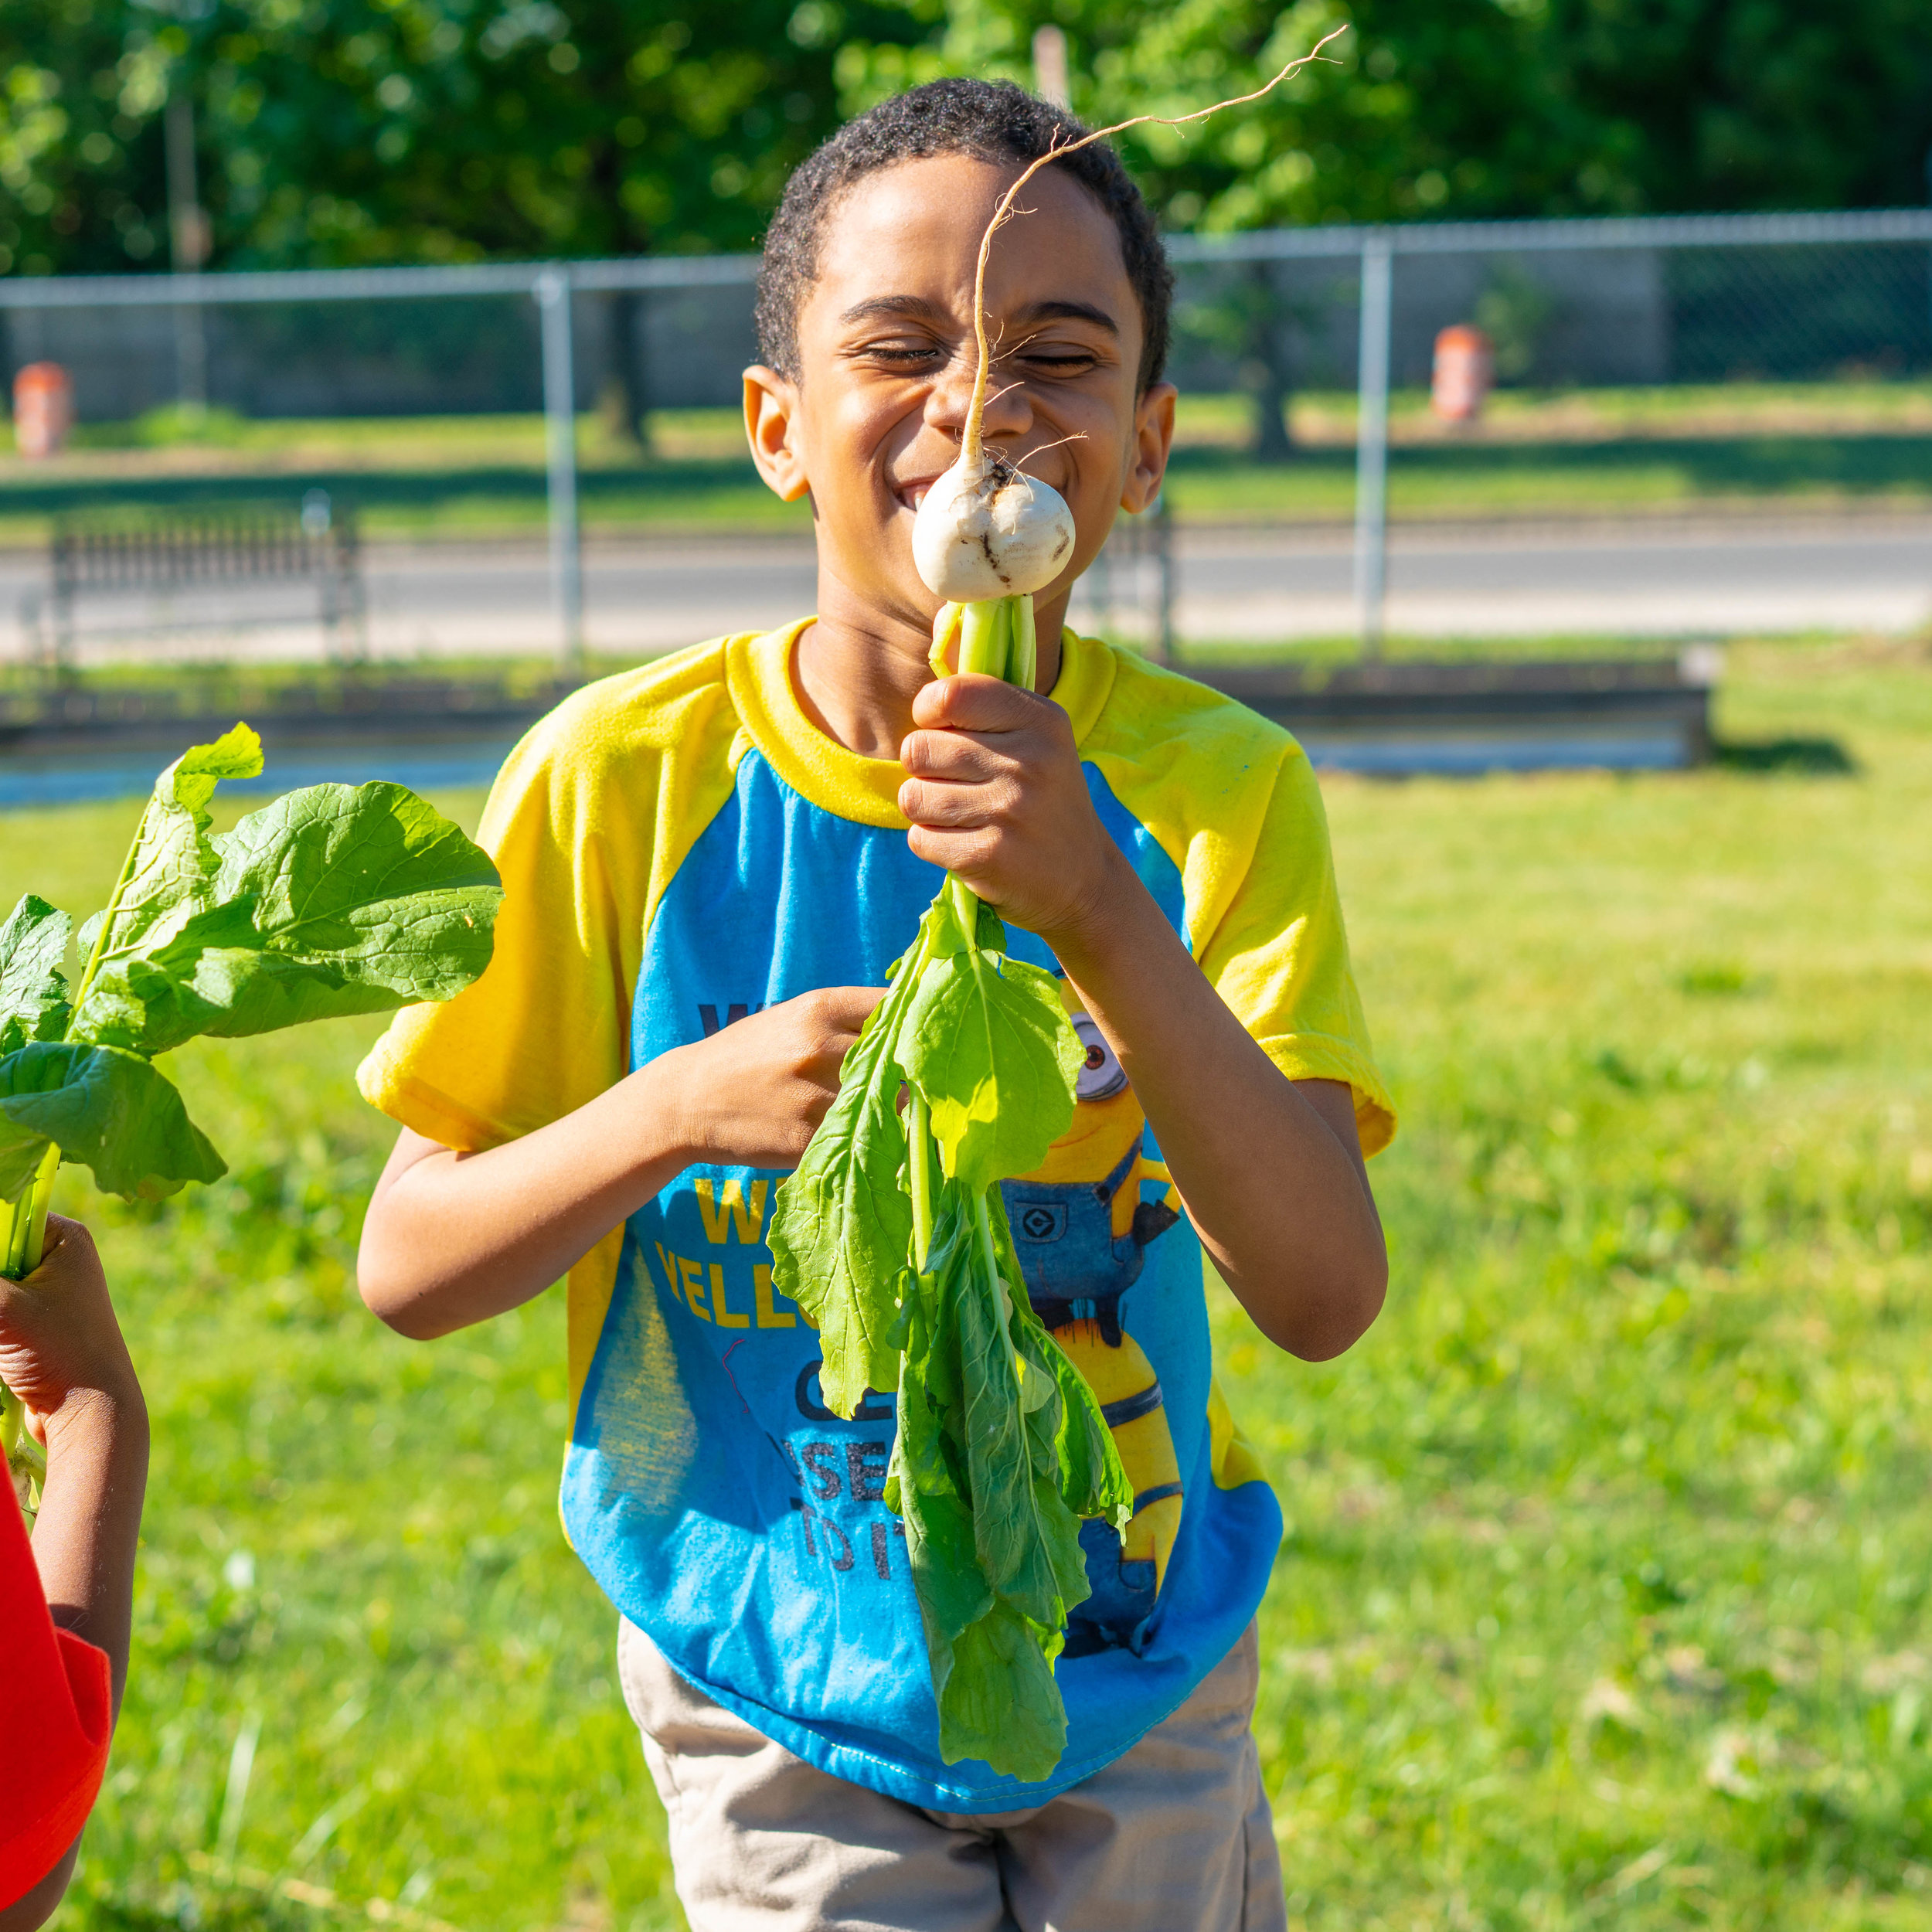 About Big Green - Founded in 2011 by Kimbal Musk and Hugo Matheson, Big Green is national nonprofit building a healthier future for kids by introducing them to real food through a nationwide network of Learning Gardens and food literacy programs.Learn more ➝